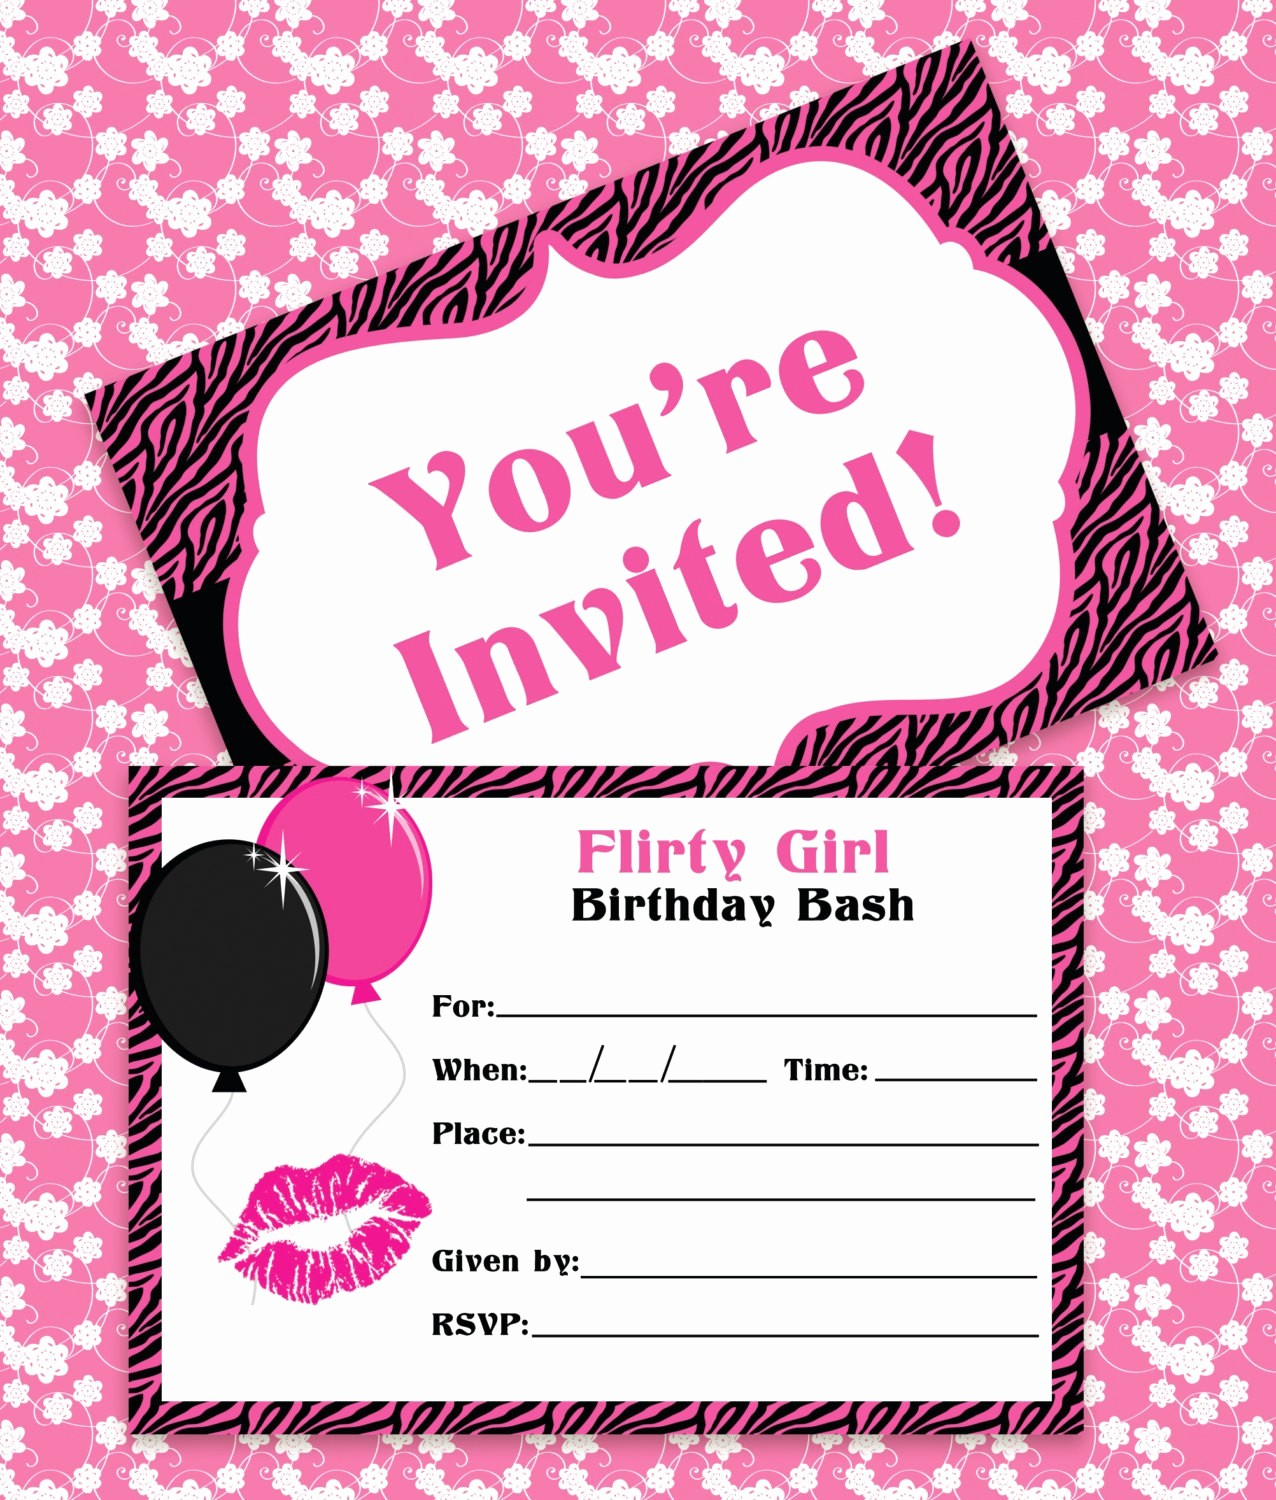 Birthday Invitation Card Template Free New Birthday Invitation Templates Free Online Birthday